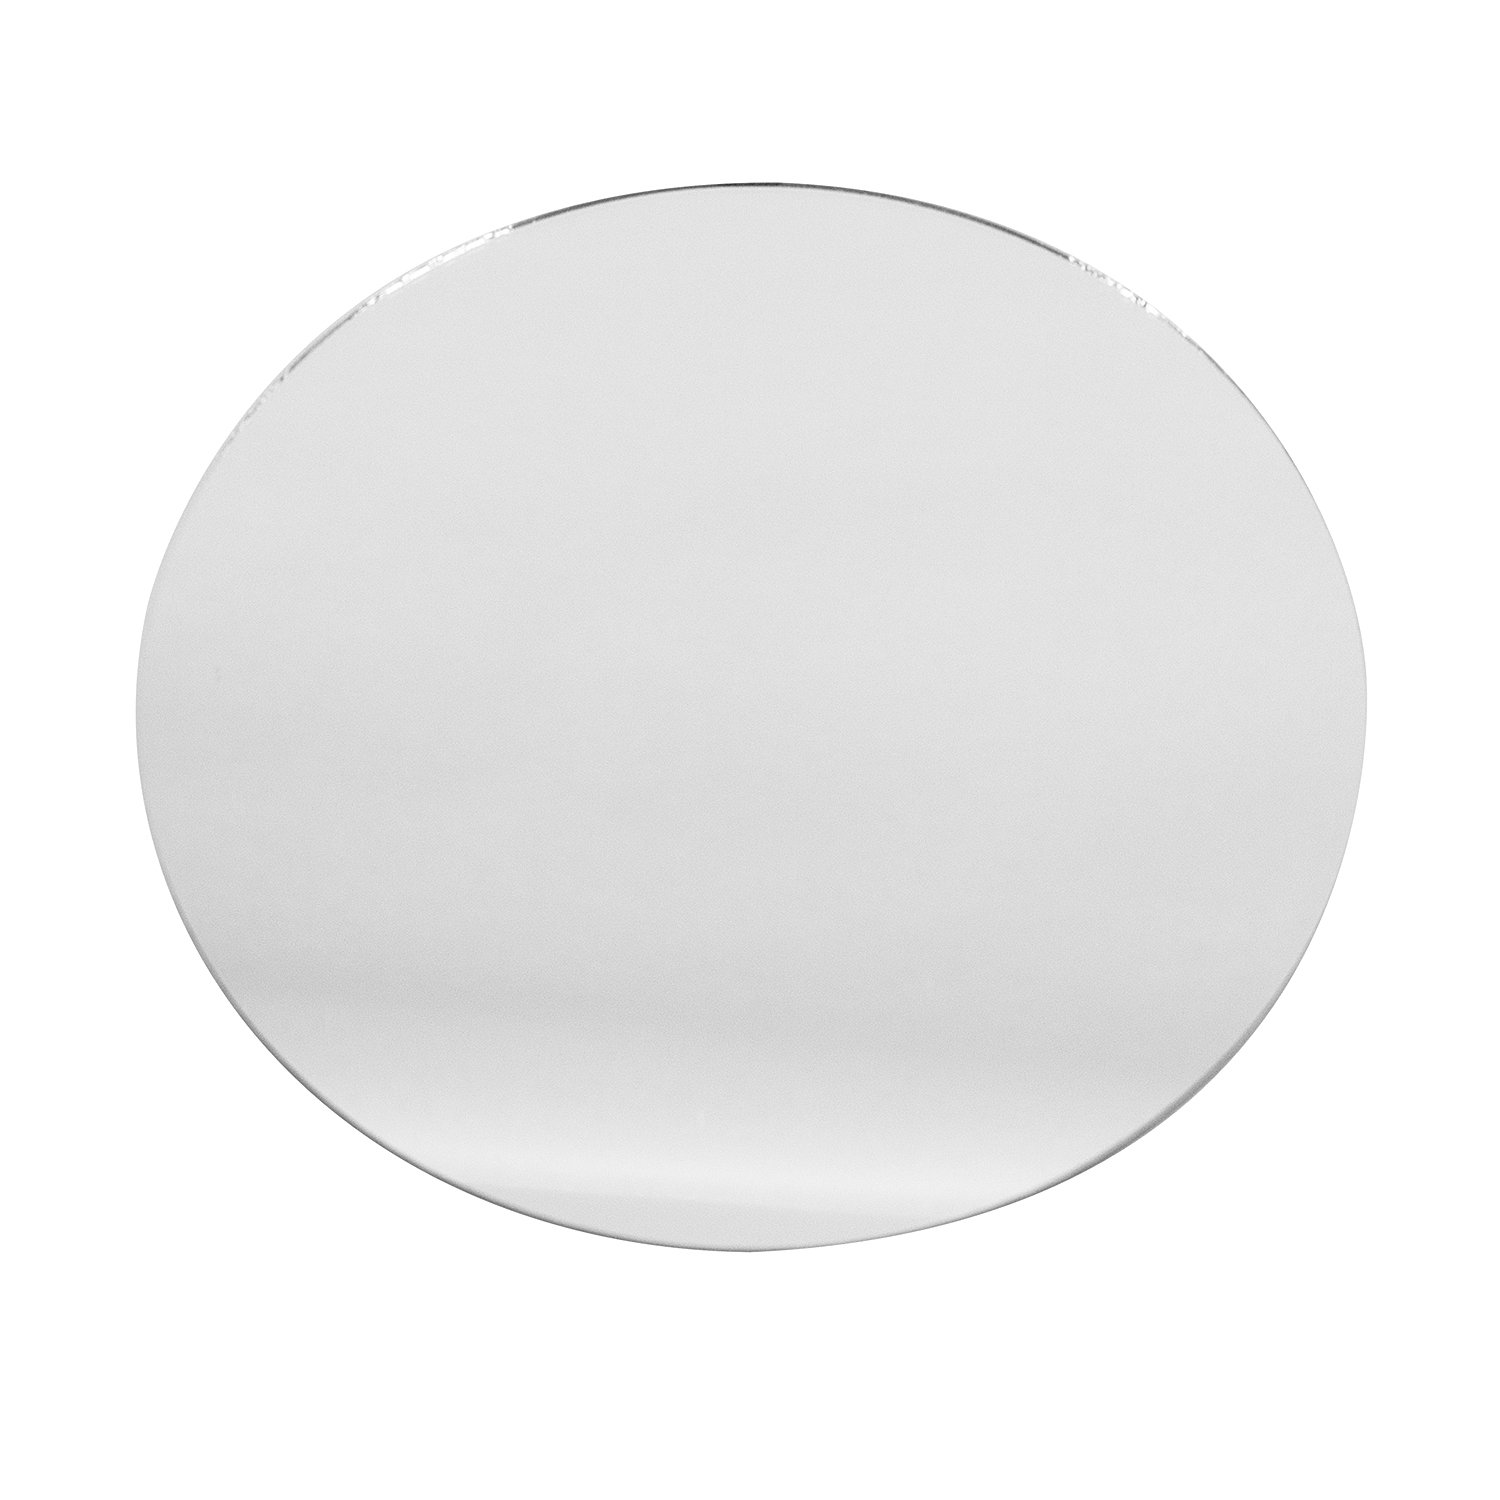 Round Mirror Wedding Table Centerpieces, 10 Pieces, 10'' Inches